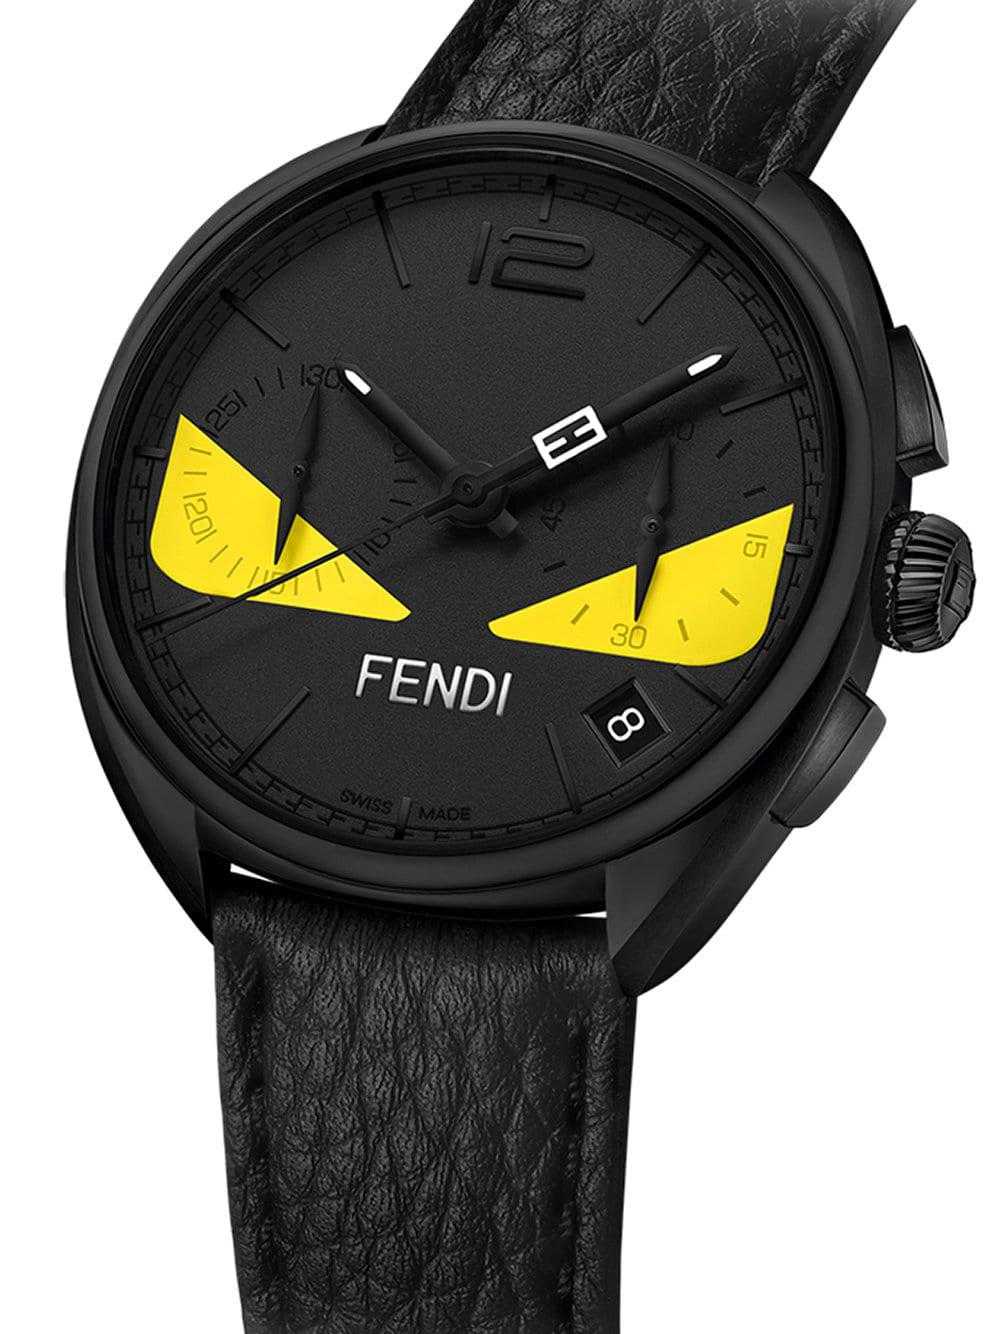 db02a2cc8 Fendi - Black Momento Bugs Watch for Men - Lyst. View fullscreen